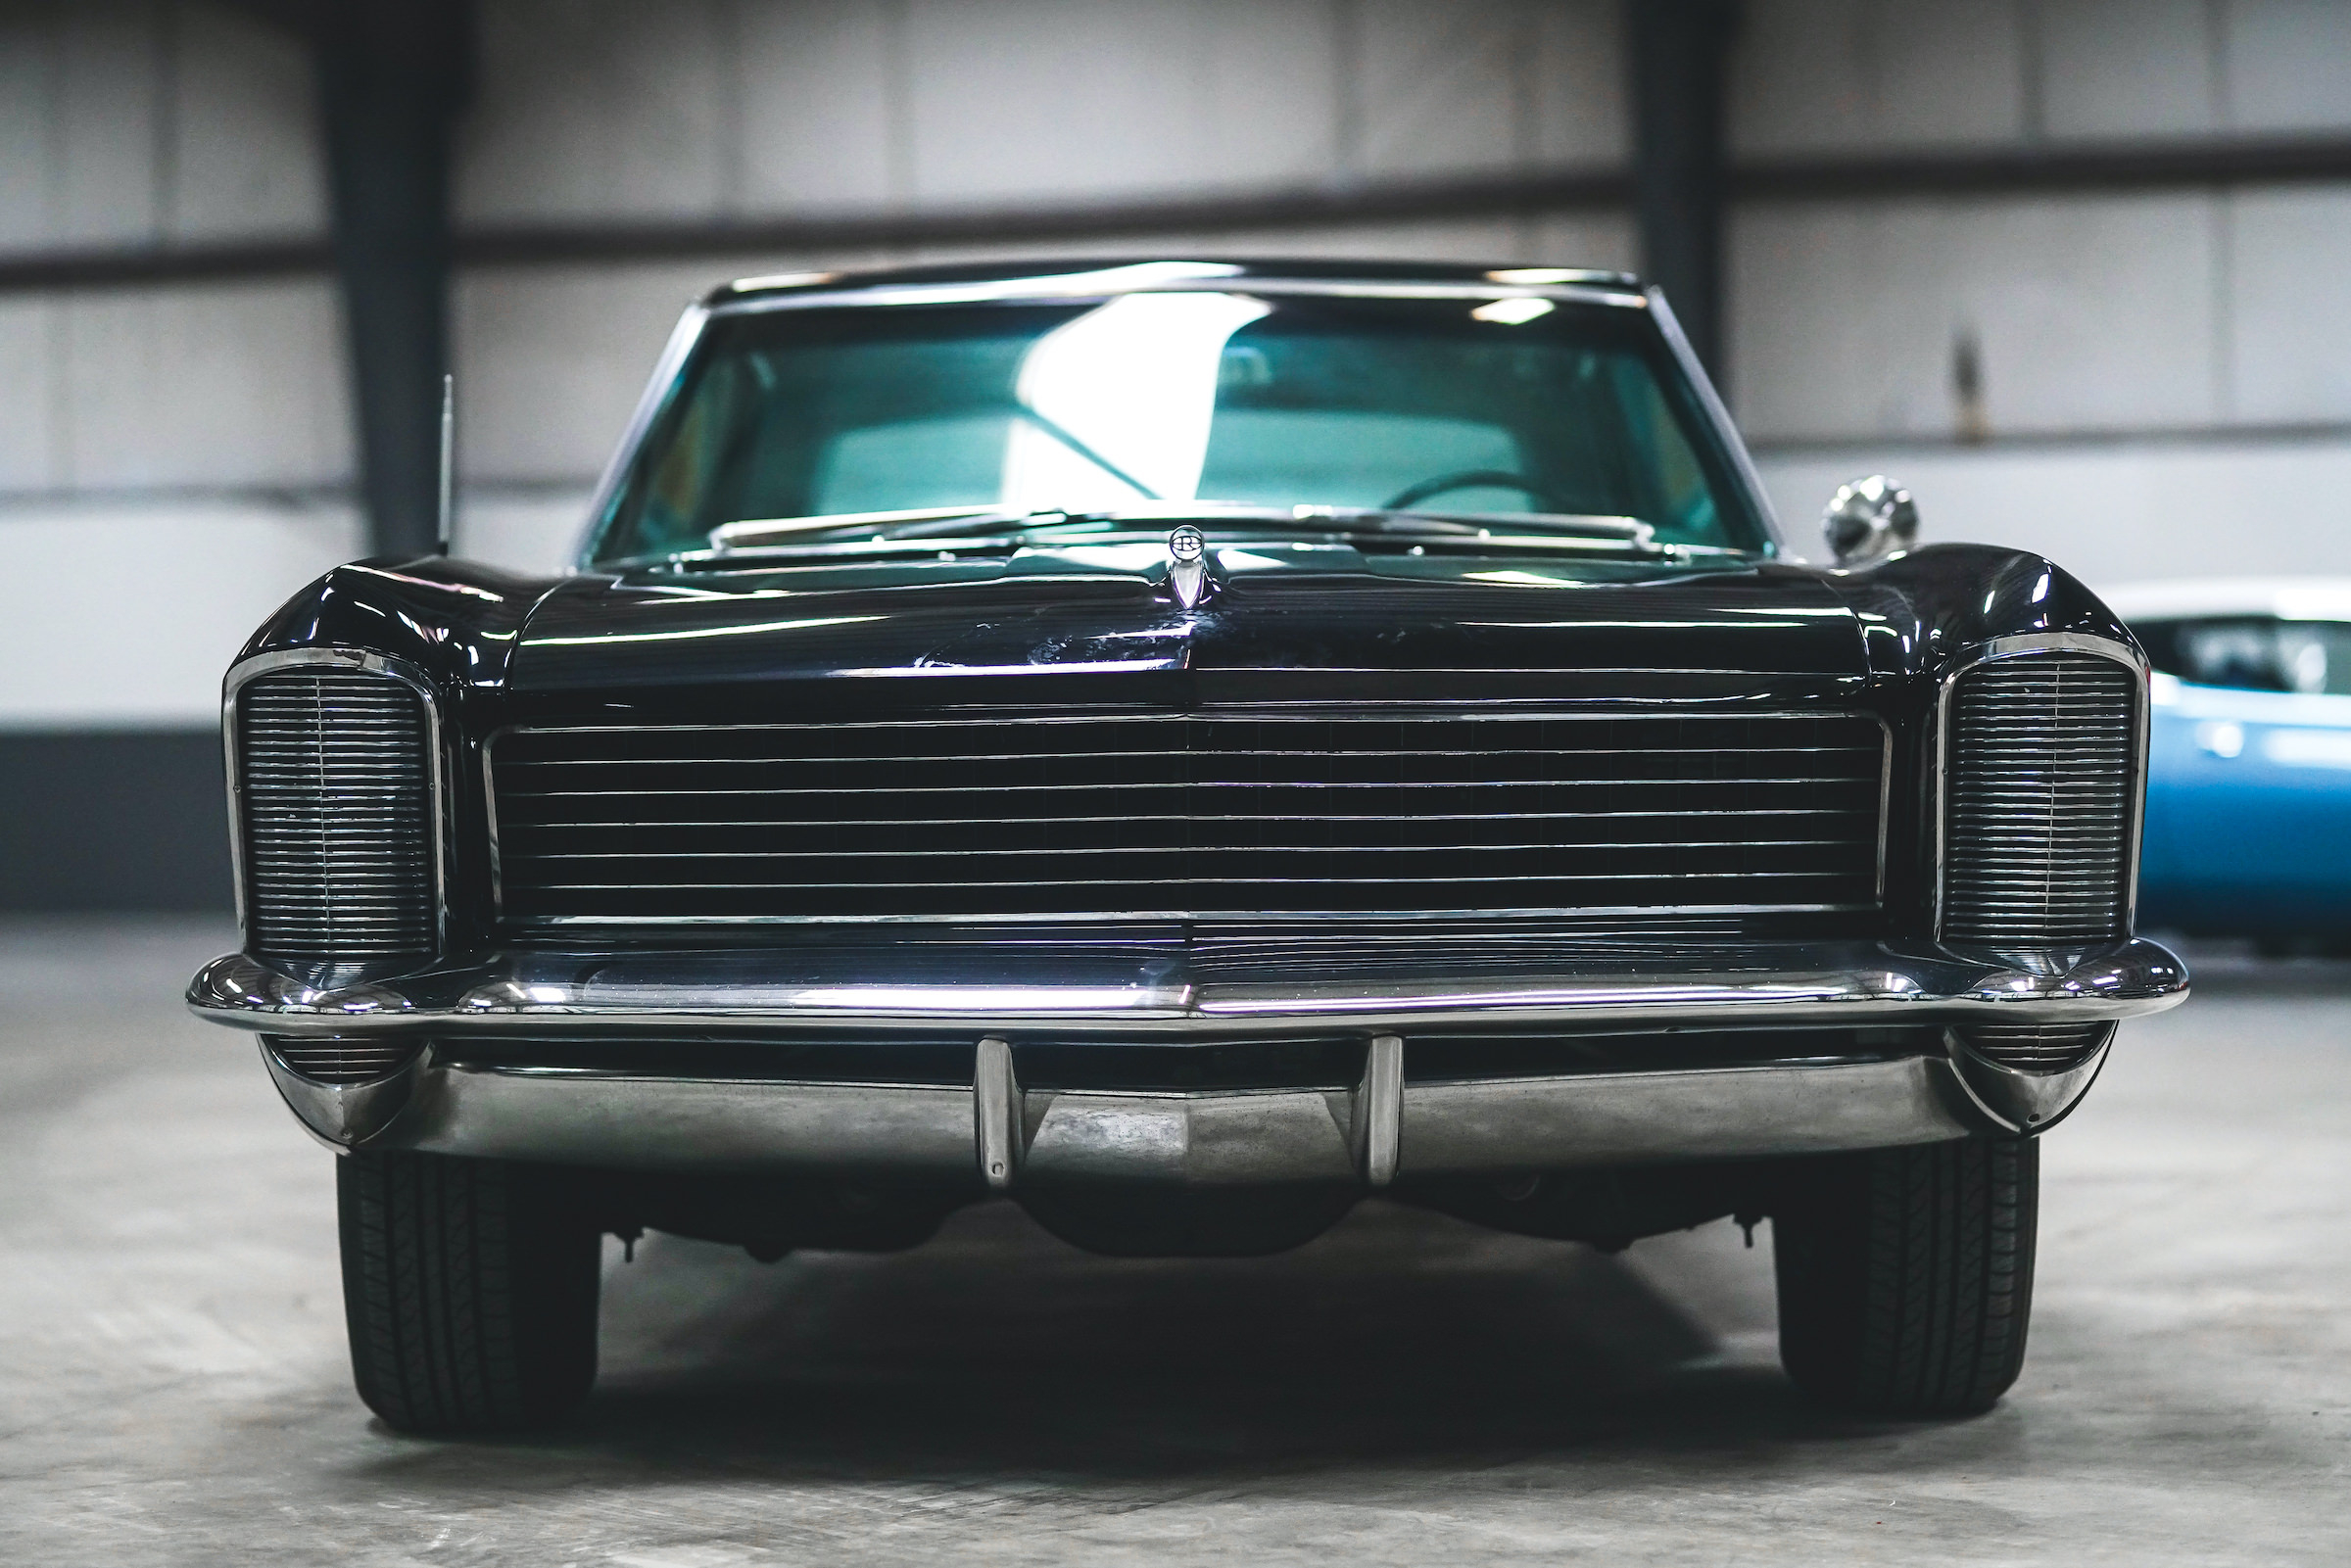 Is This The Quintessential American Villain's Car? The 1965 New 2021 Buick Riviera Pictures, Grill, Models